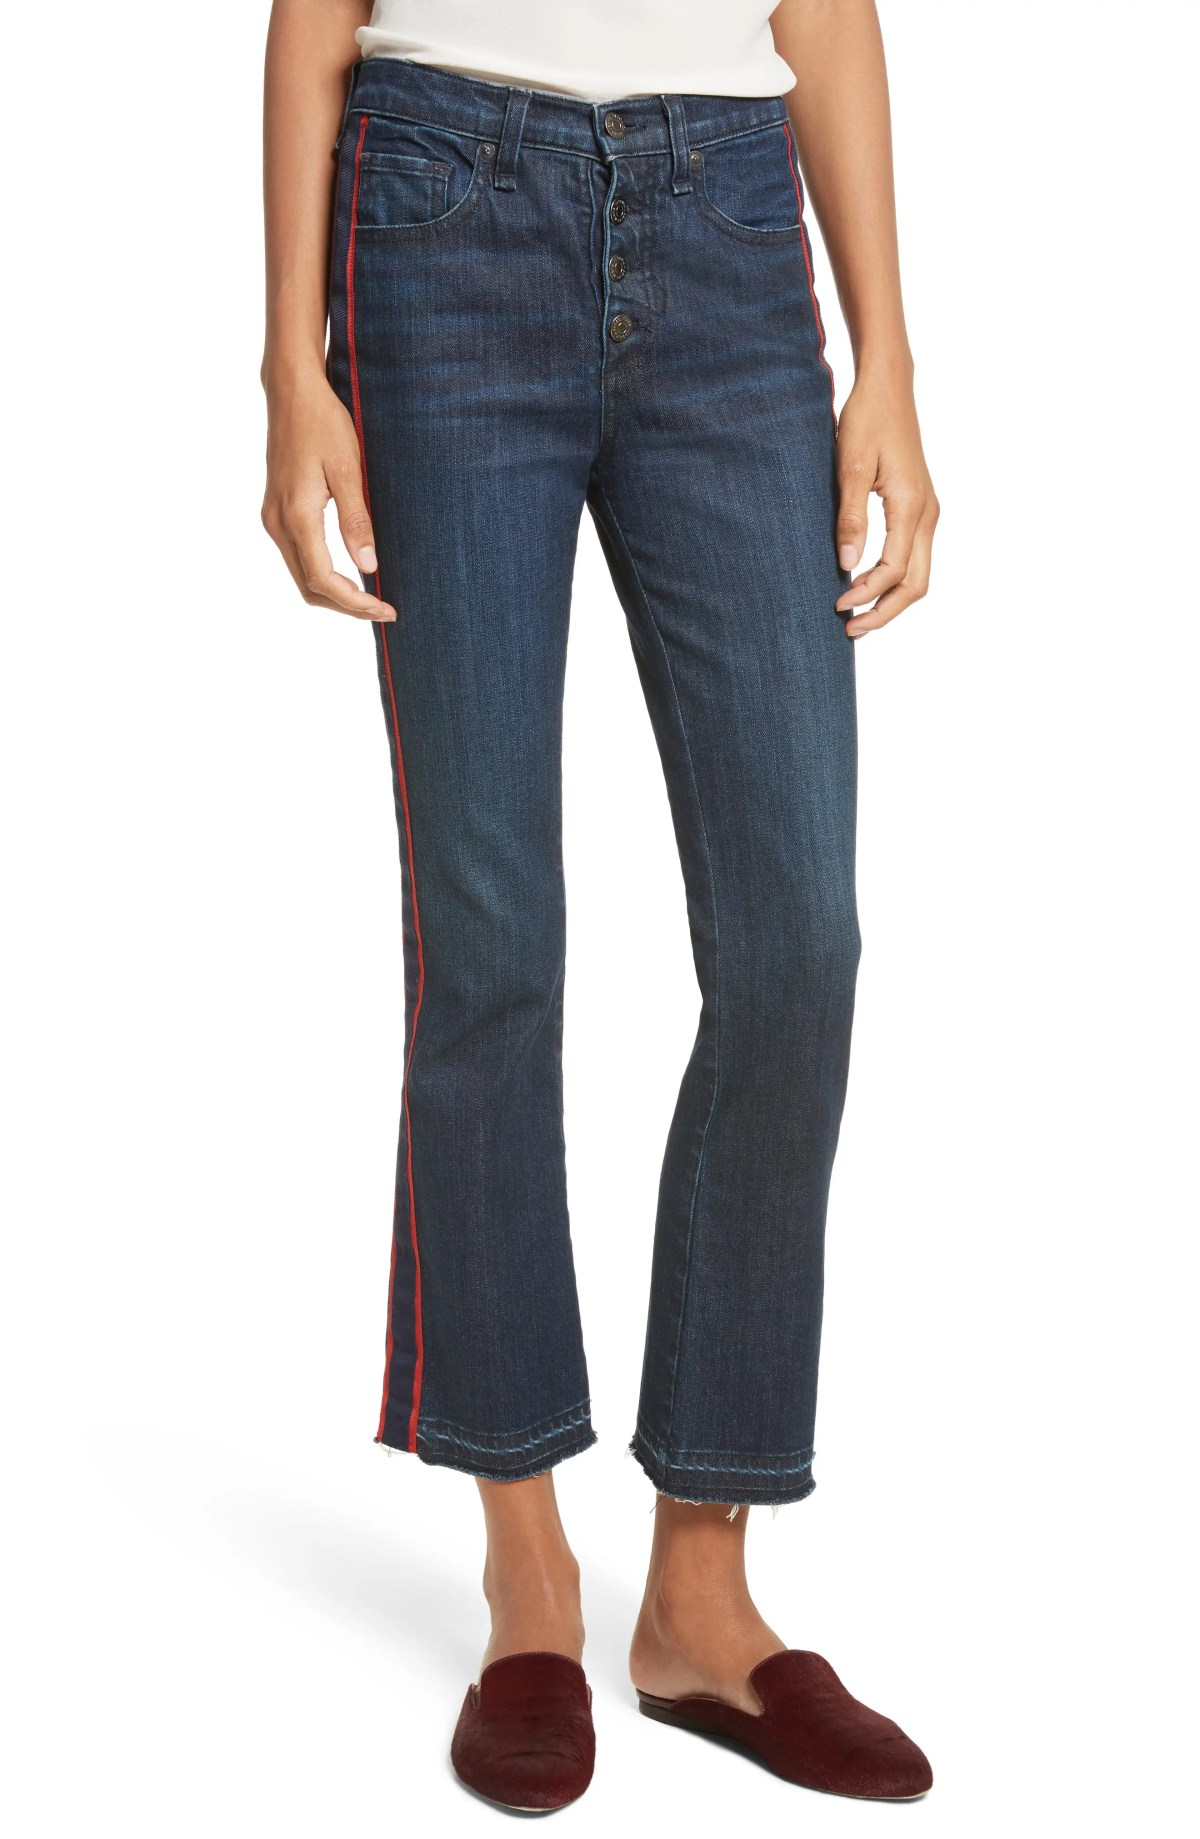 VERONICA BEARD Carolyn Tuxedo Stripe Baby Boot Crop Jeans, Main, color, MIDNIGHT FRAY/ RED